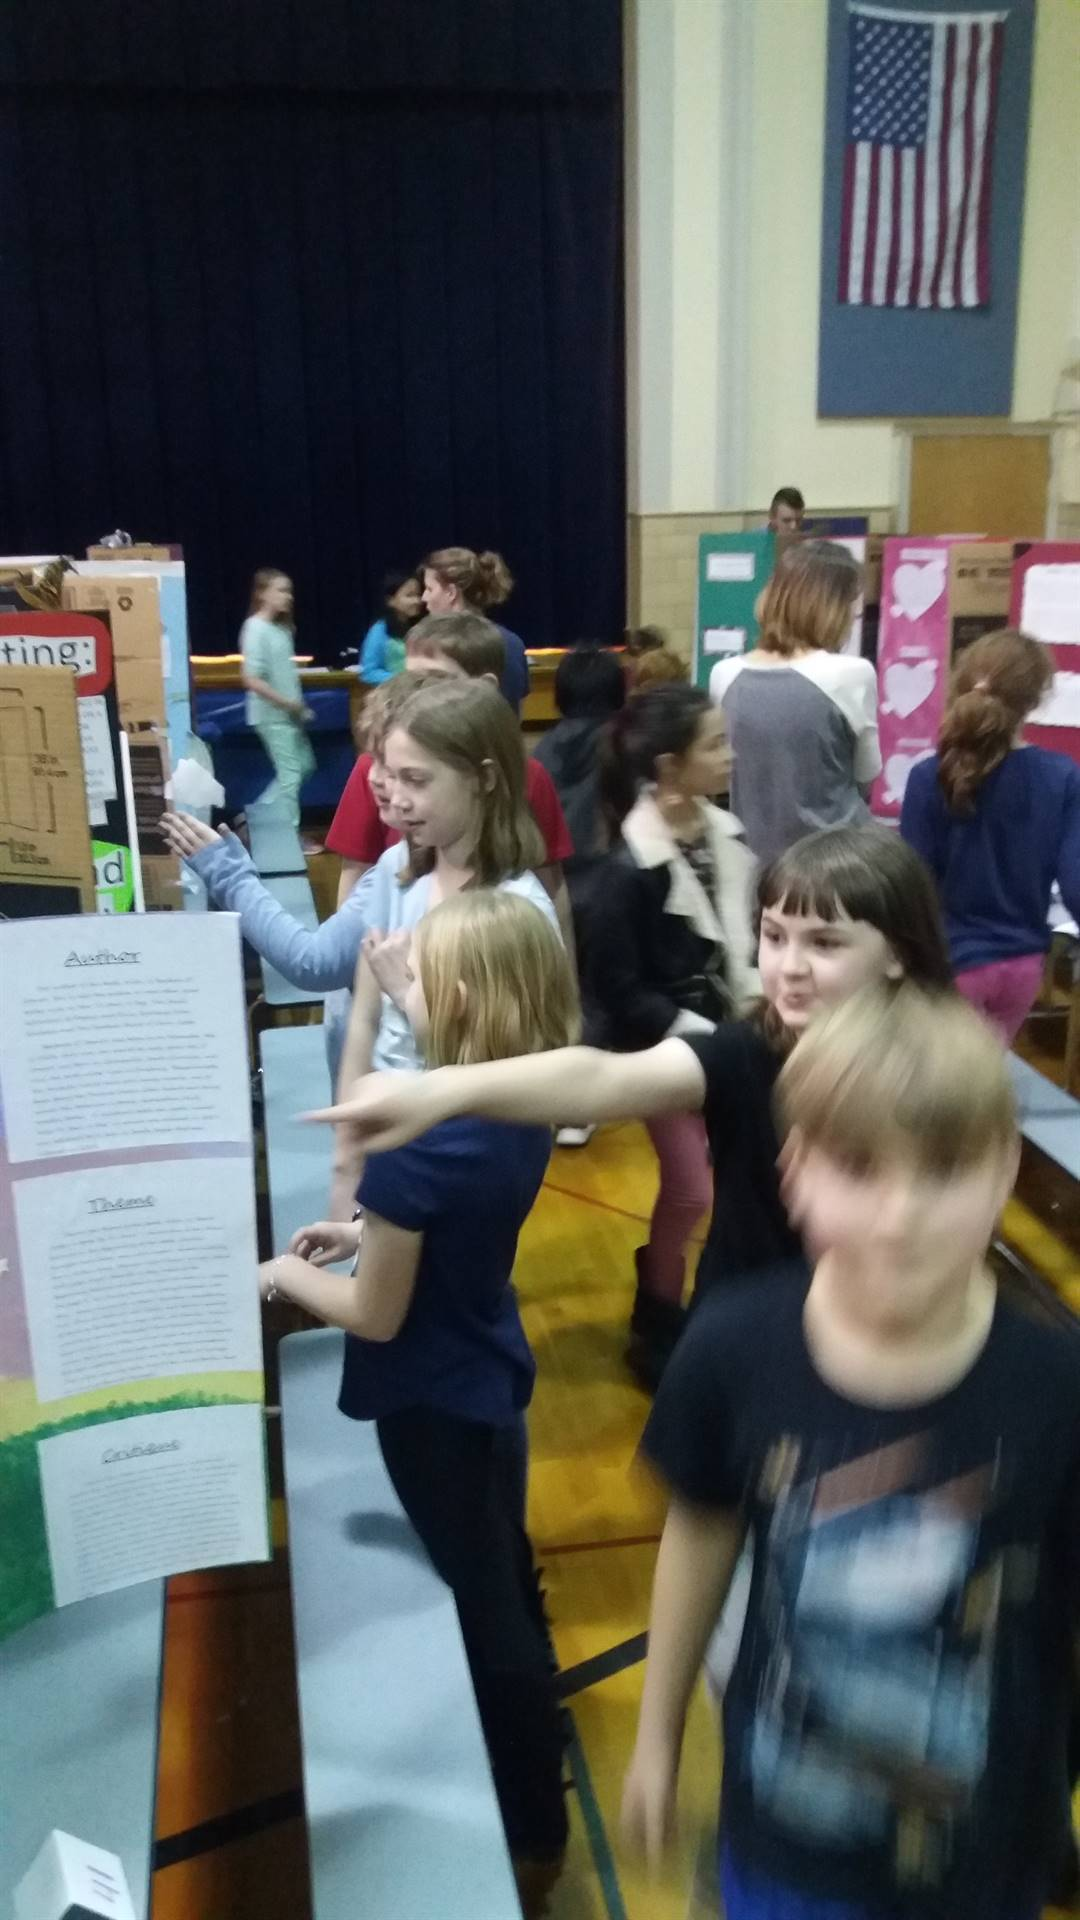 Students looking at reading fair poster boards.